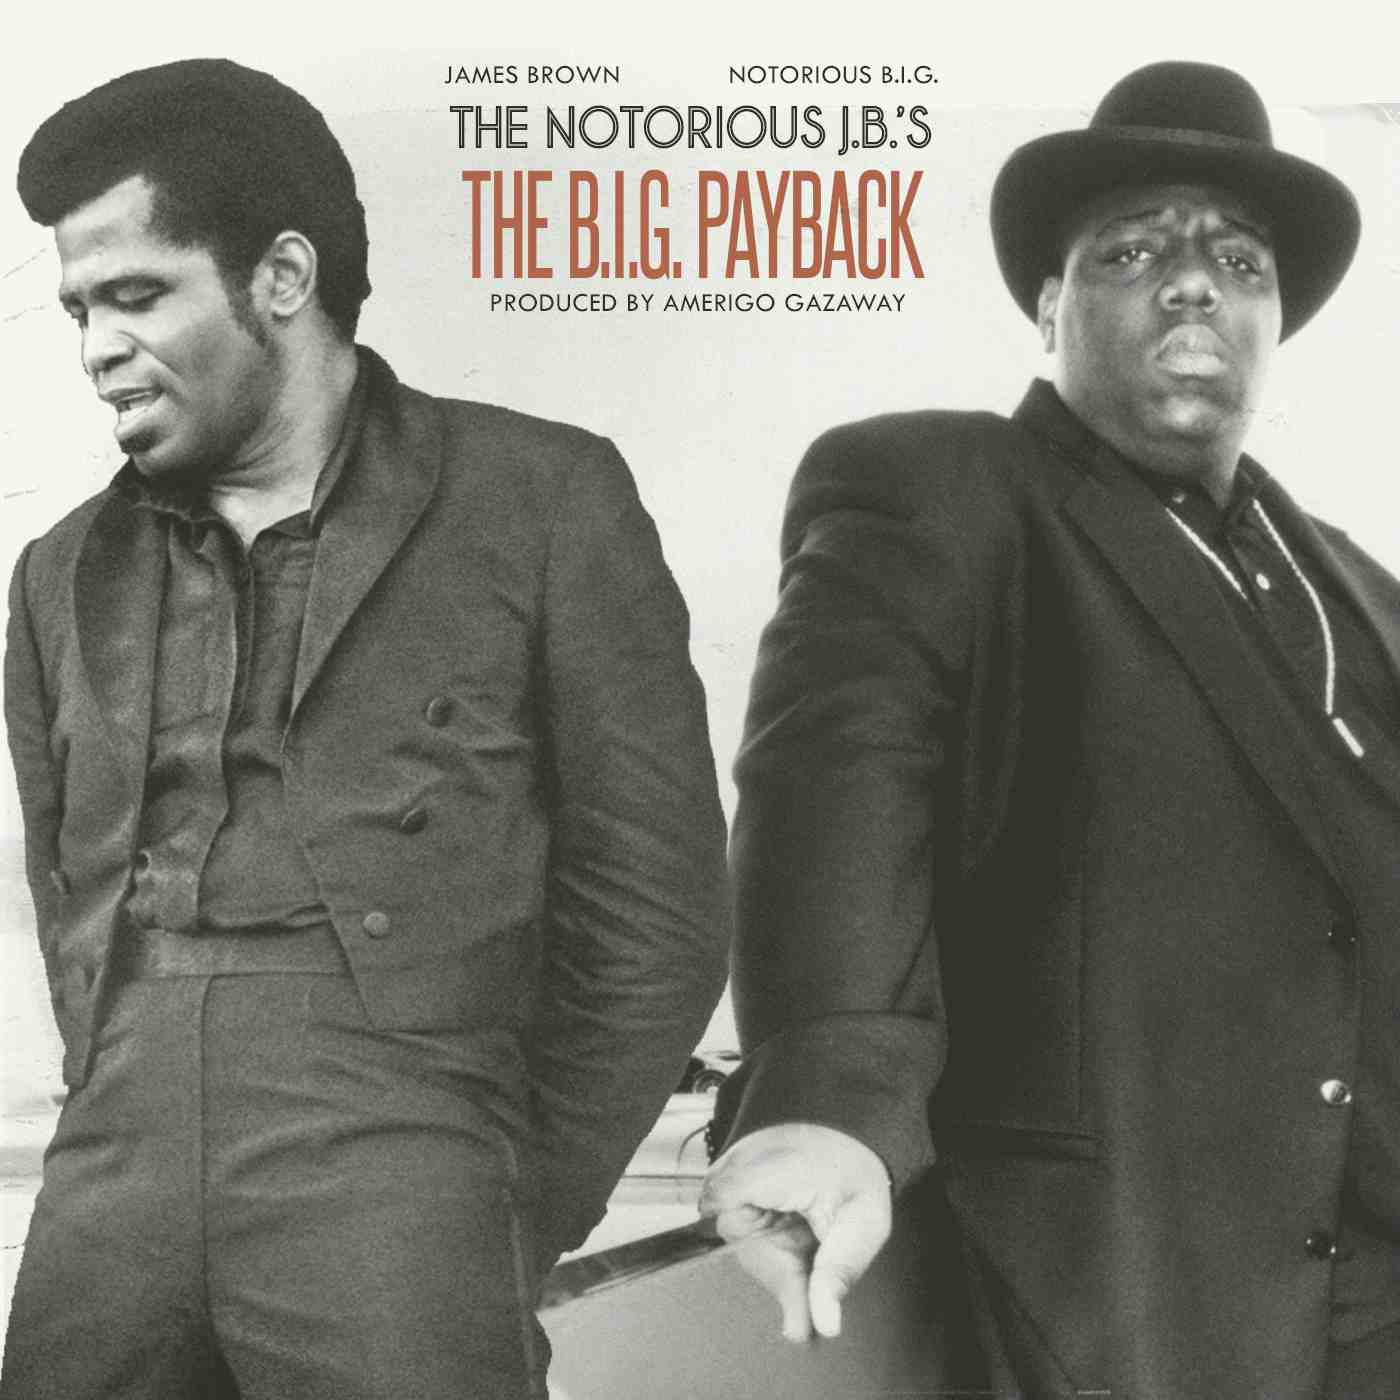 Biggie vs James Brown/B.I.G. PAYBACK LP